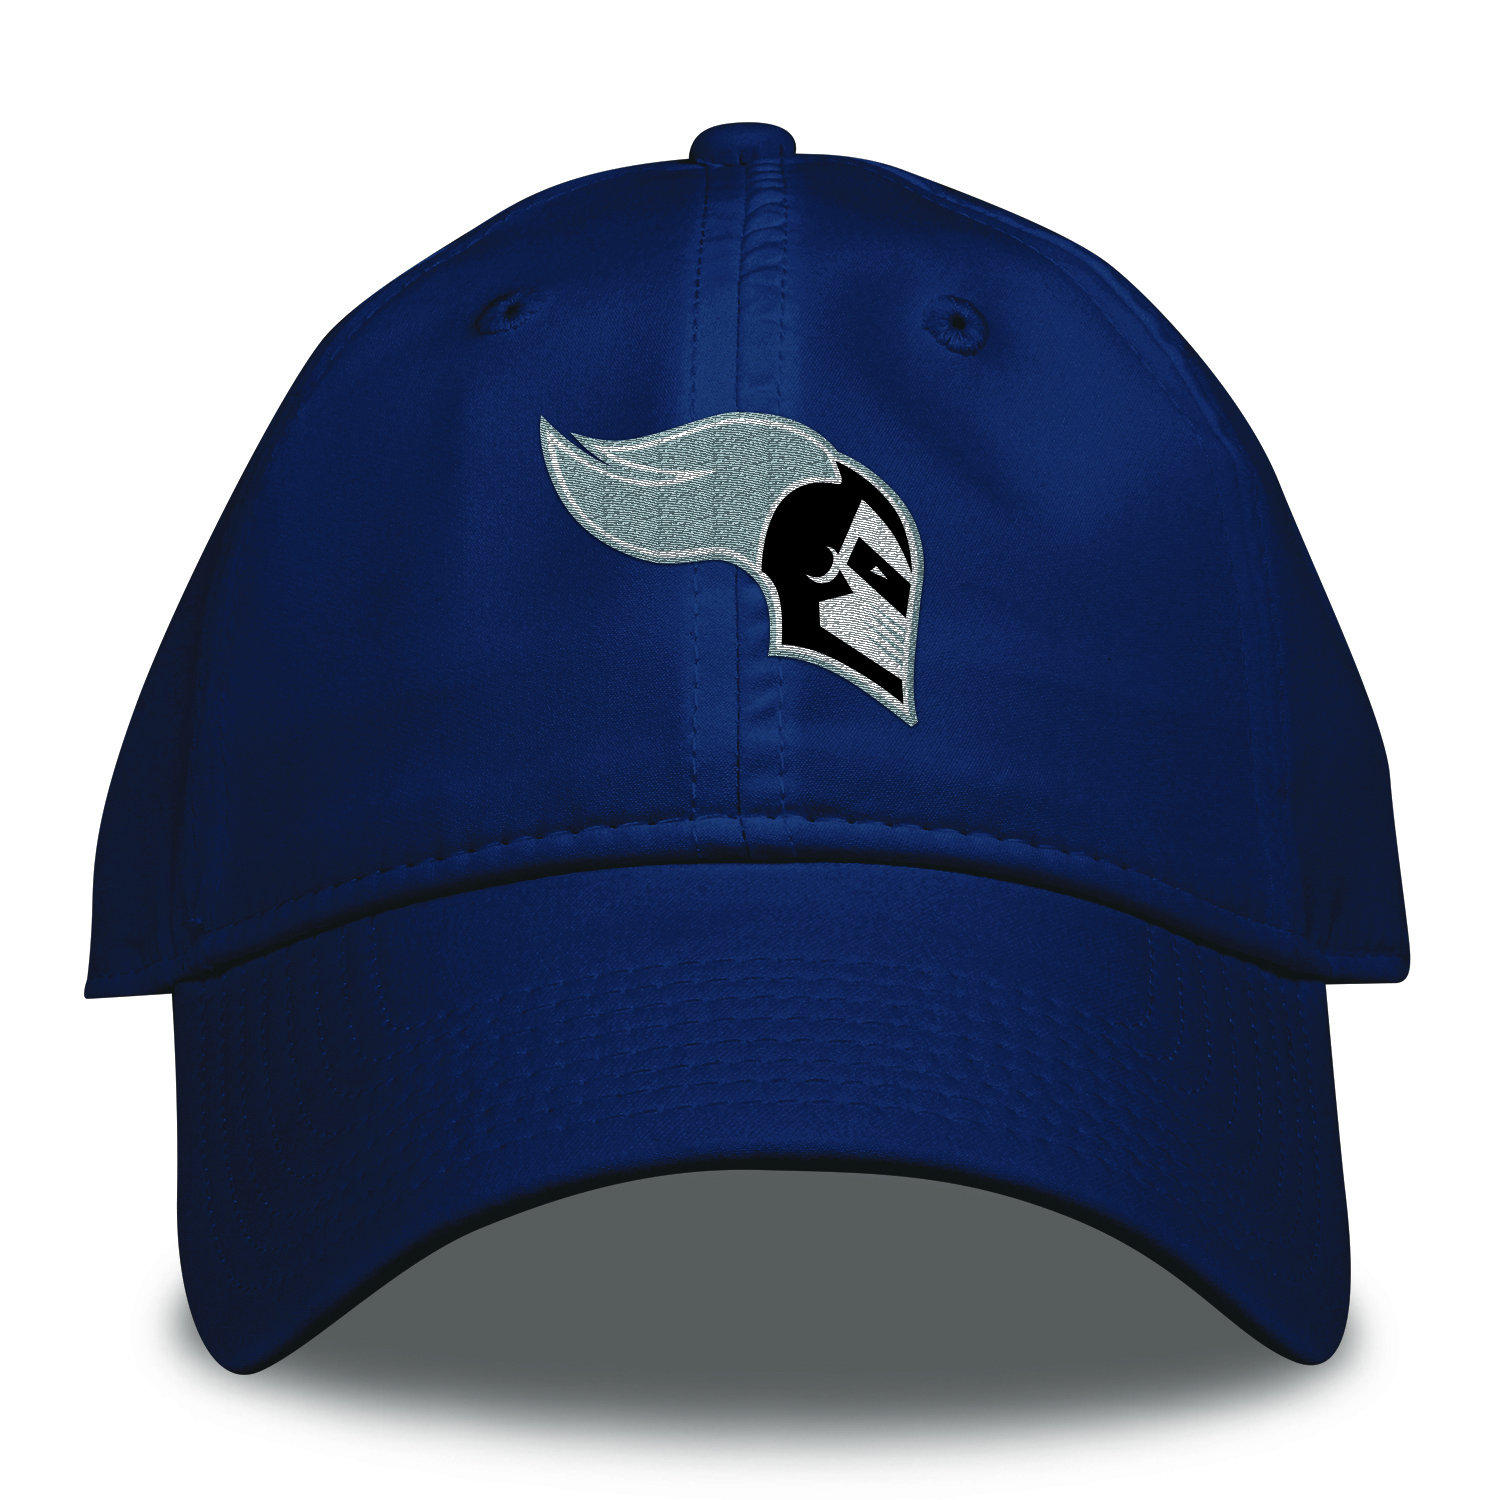 MSMC Knights Head - Royal Blue